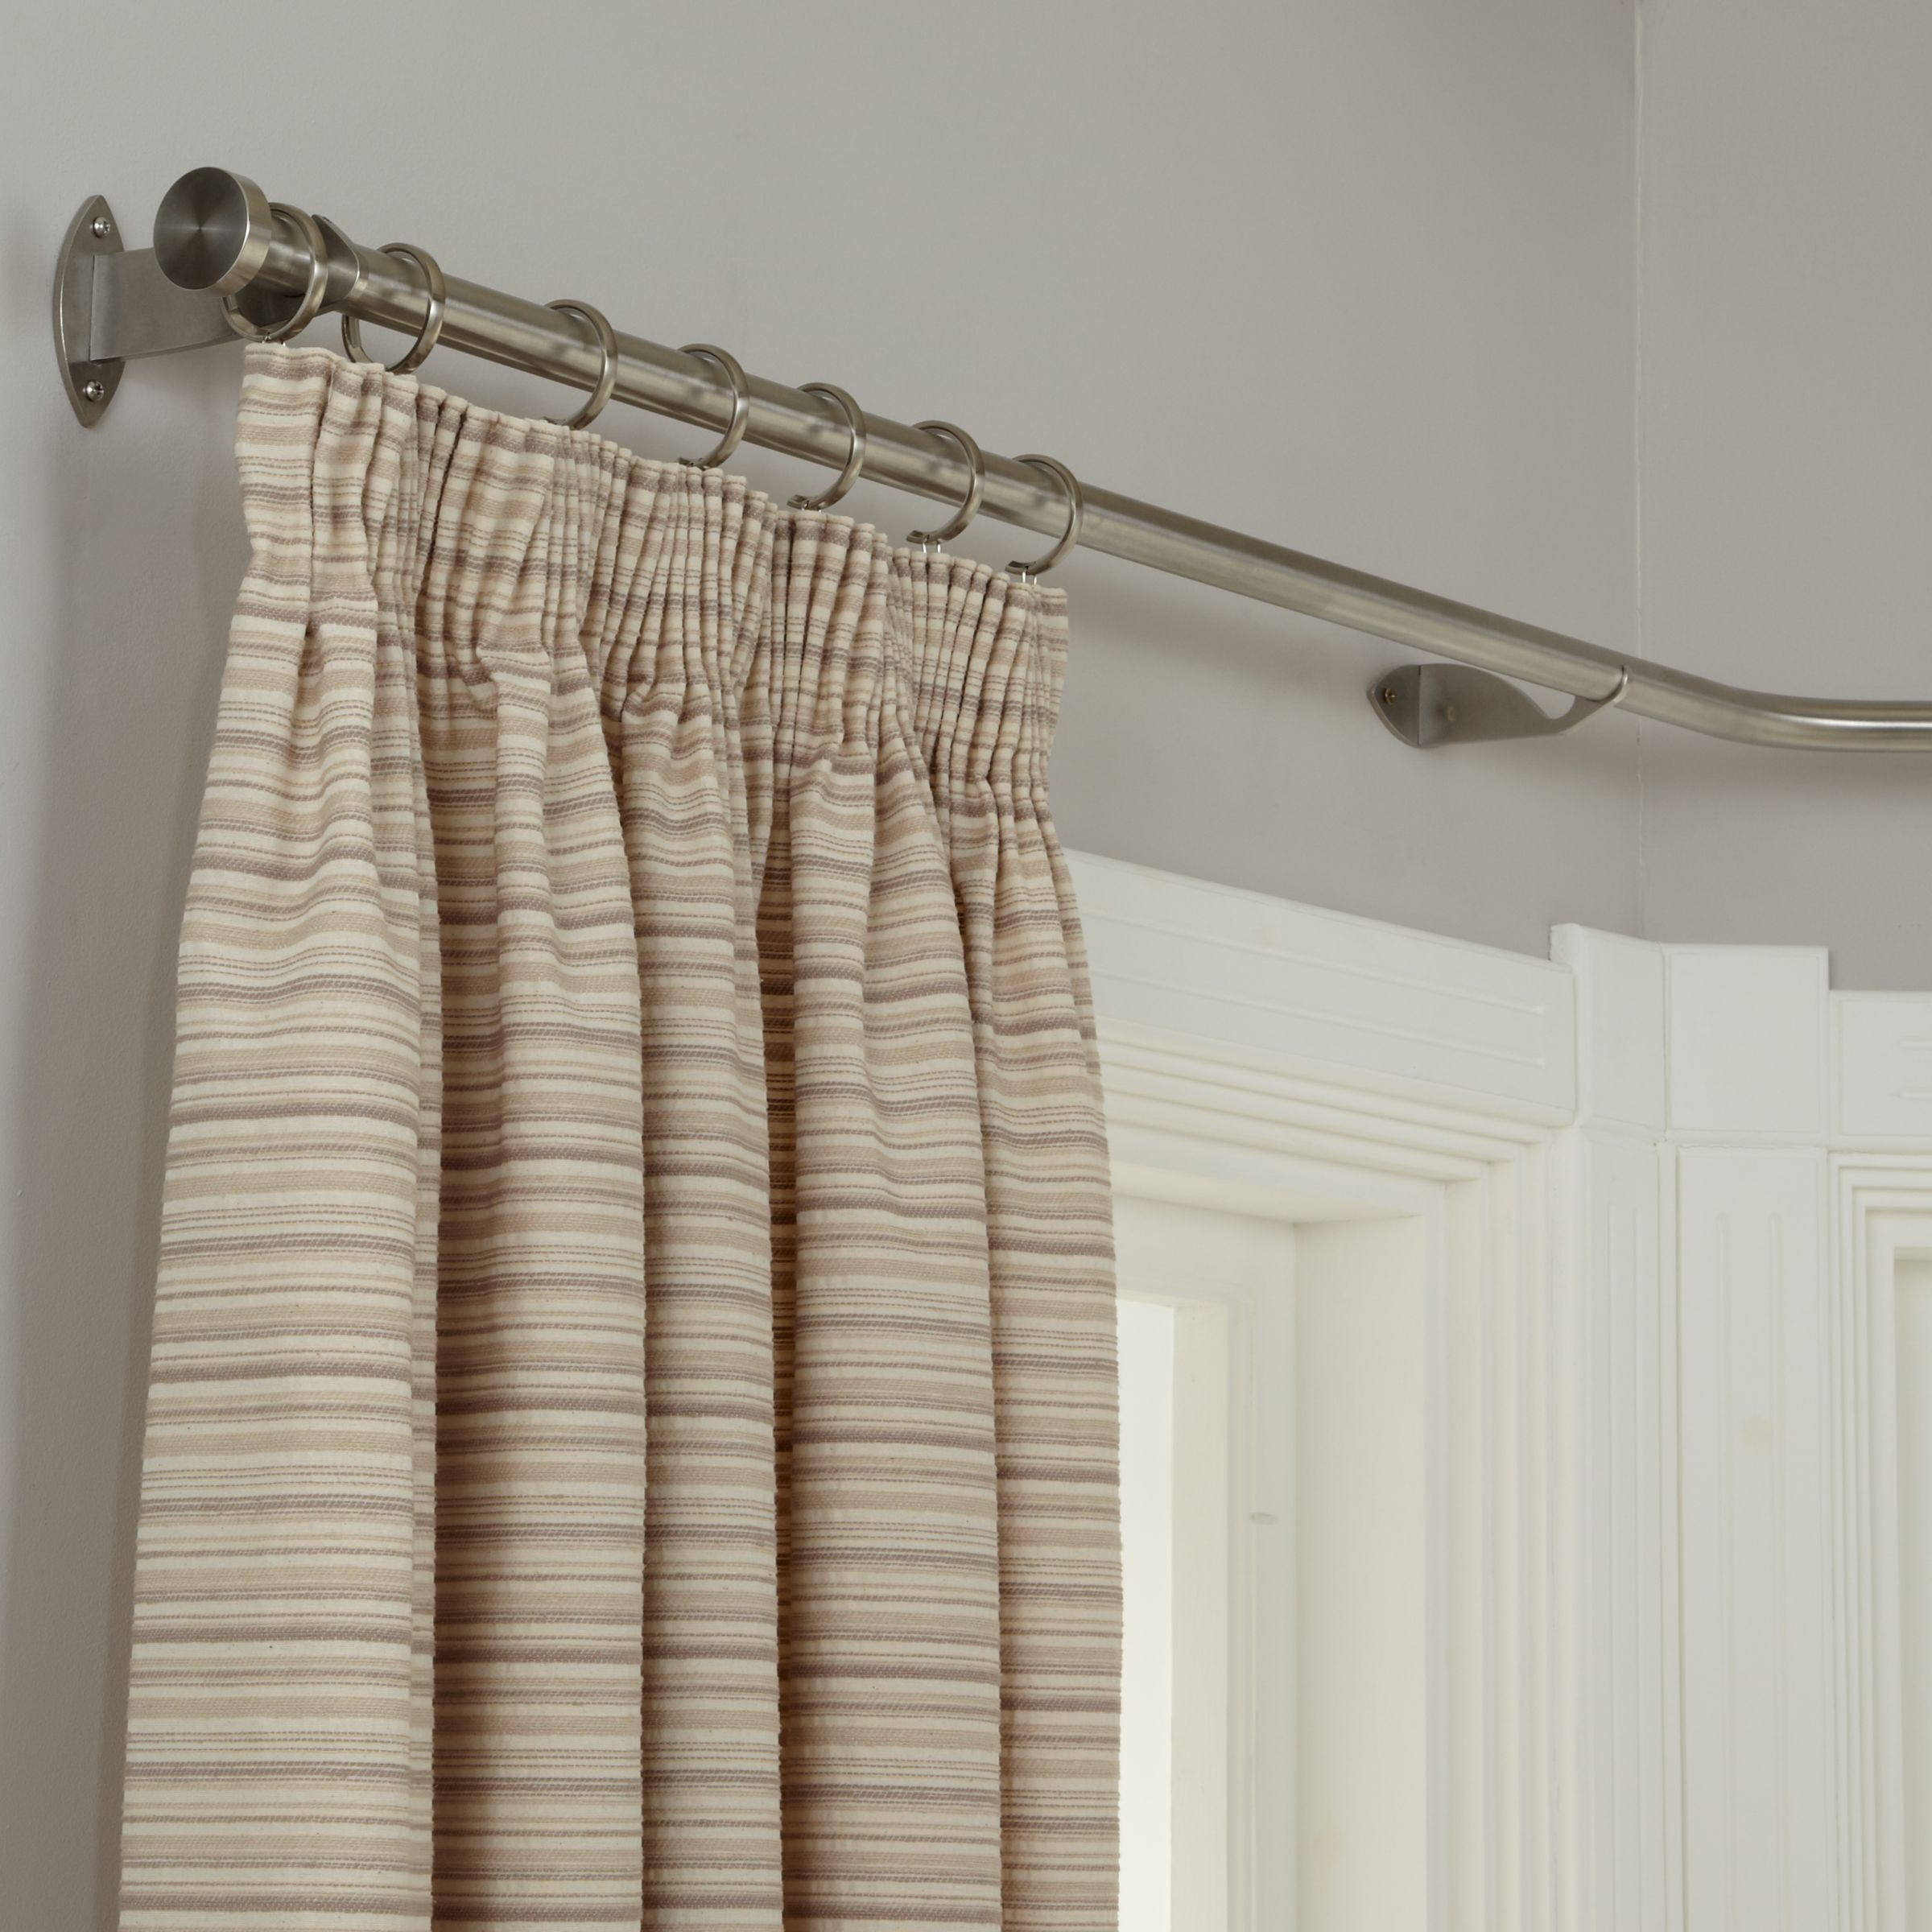 John Lewis Partners Made To Measure Contemporary Bay Bend Curtain Pole Disc Finial Curtain Poles Curtains Bay Window Pole